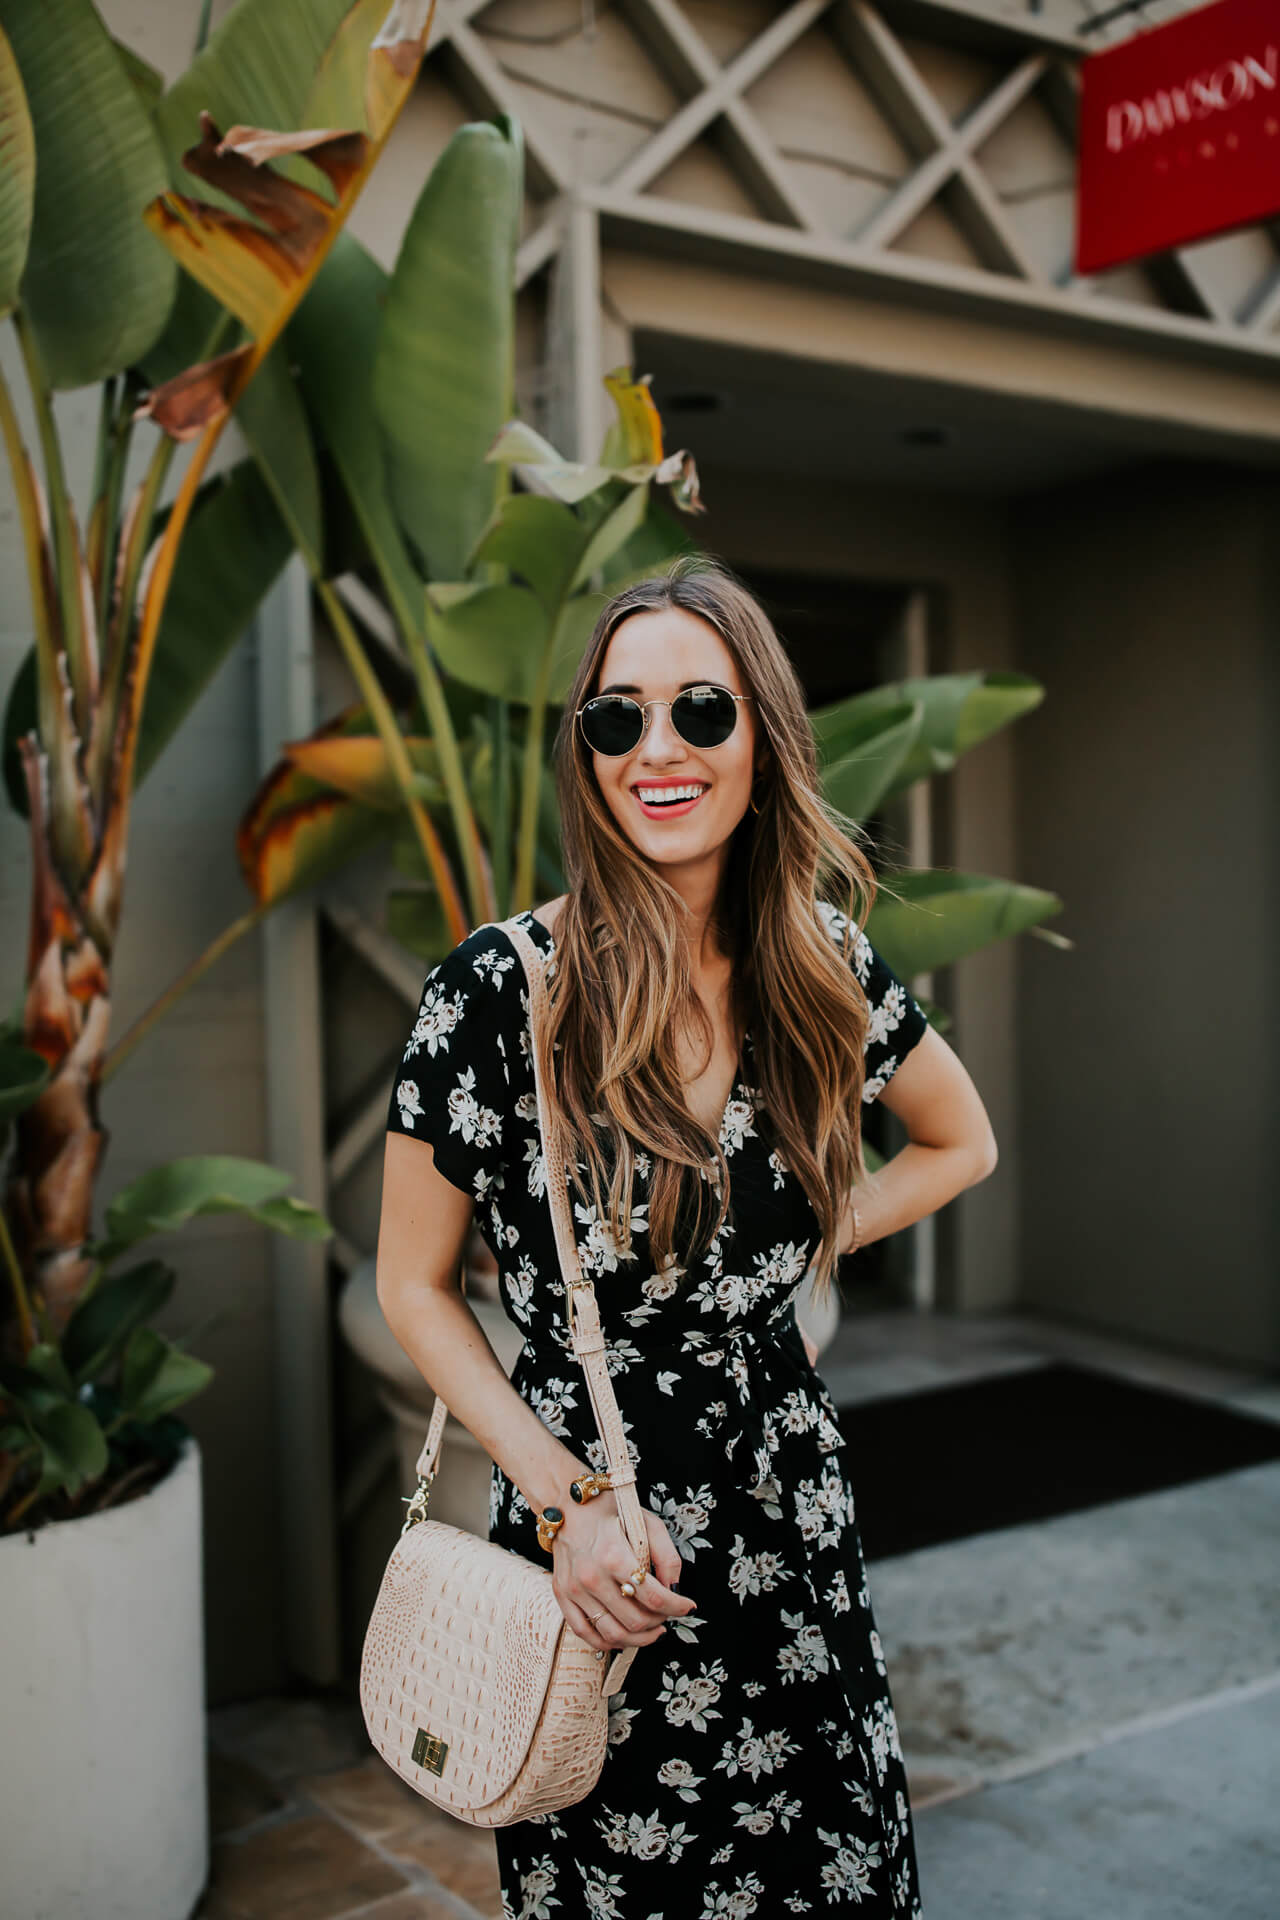 obsessed with this dark floral look right now - M Loves M @marmar